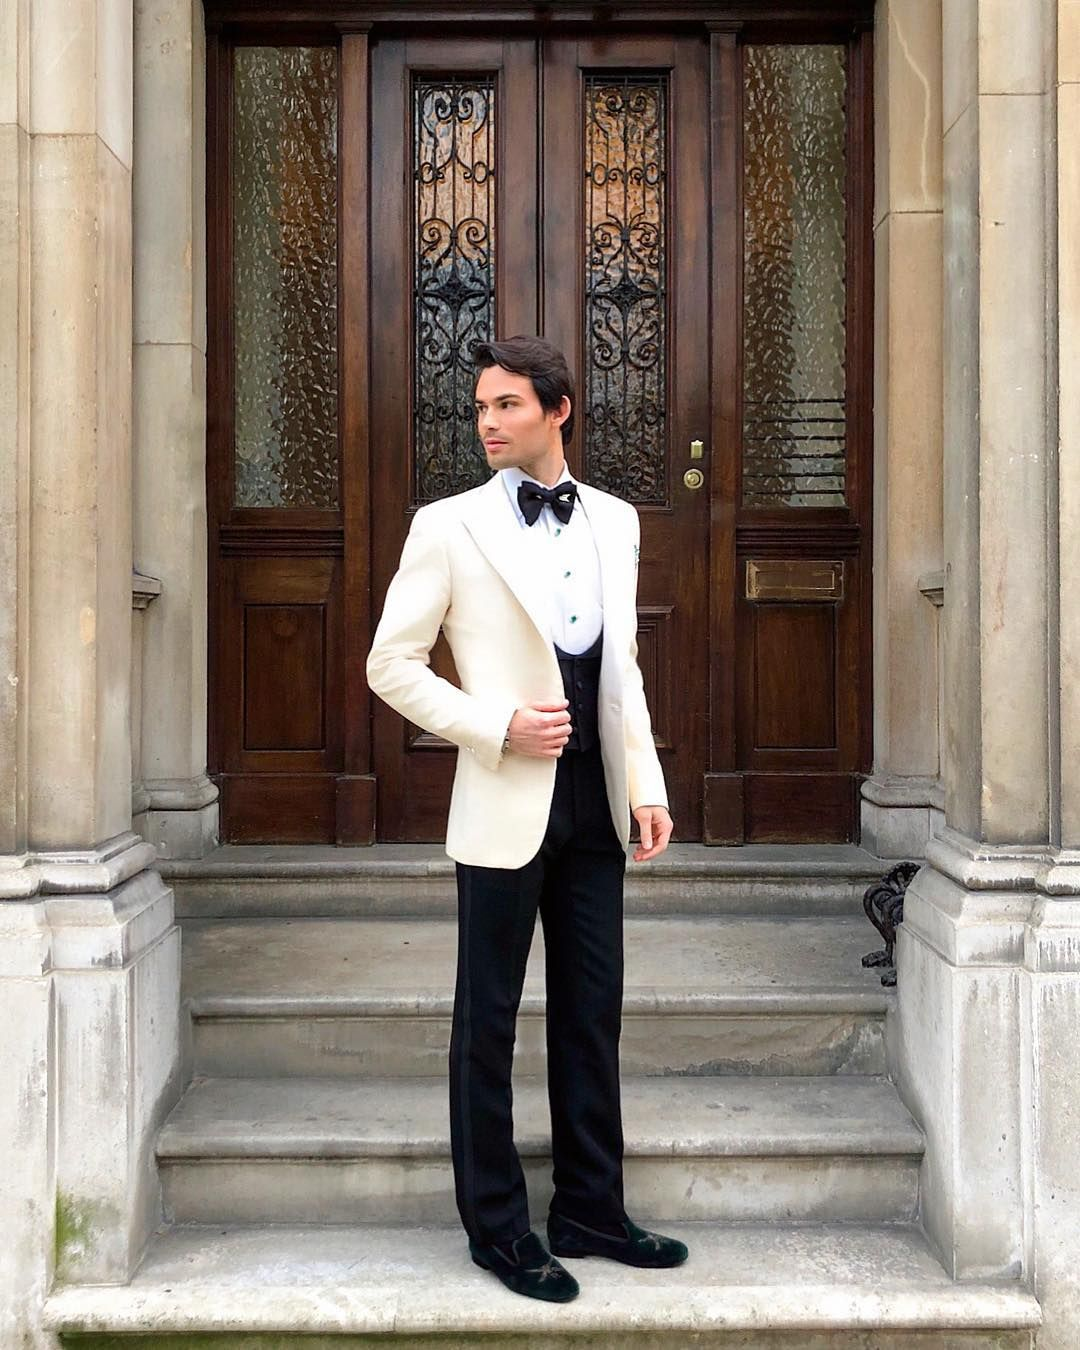 Image may contain: Made in Chelsea cast are actually from, Made in Chelsea, cast, place of birth, from, Mark Francis, Long Sleeve, Blazer, Jacket, Door, Coat, Overcoat, Suit, Sleeve, Footwear, Shoe, Human, Person, Clothing, Apparel